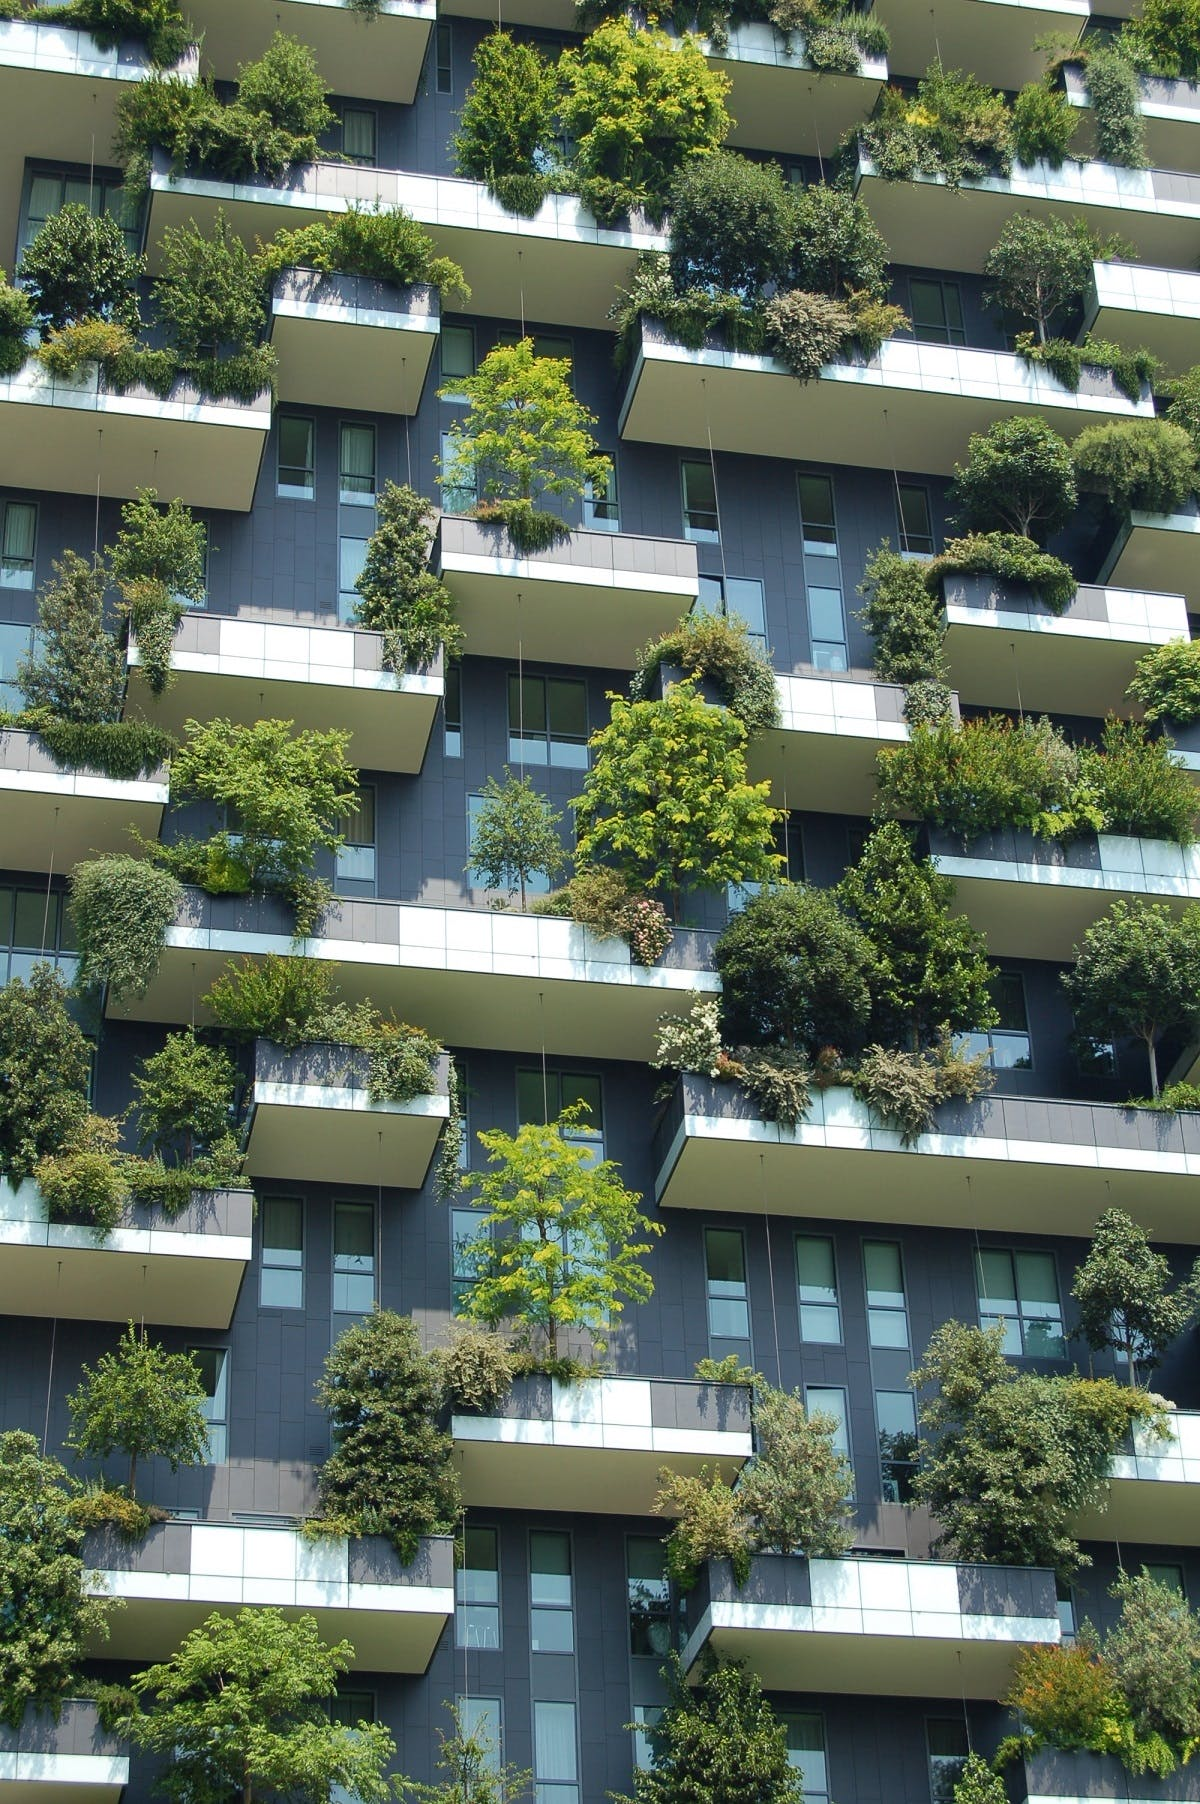 An apartment block with trees on every balcony